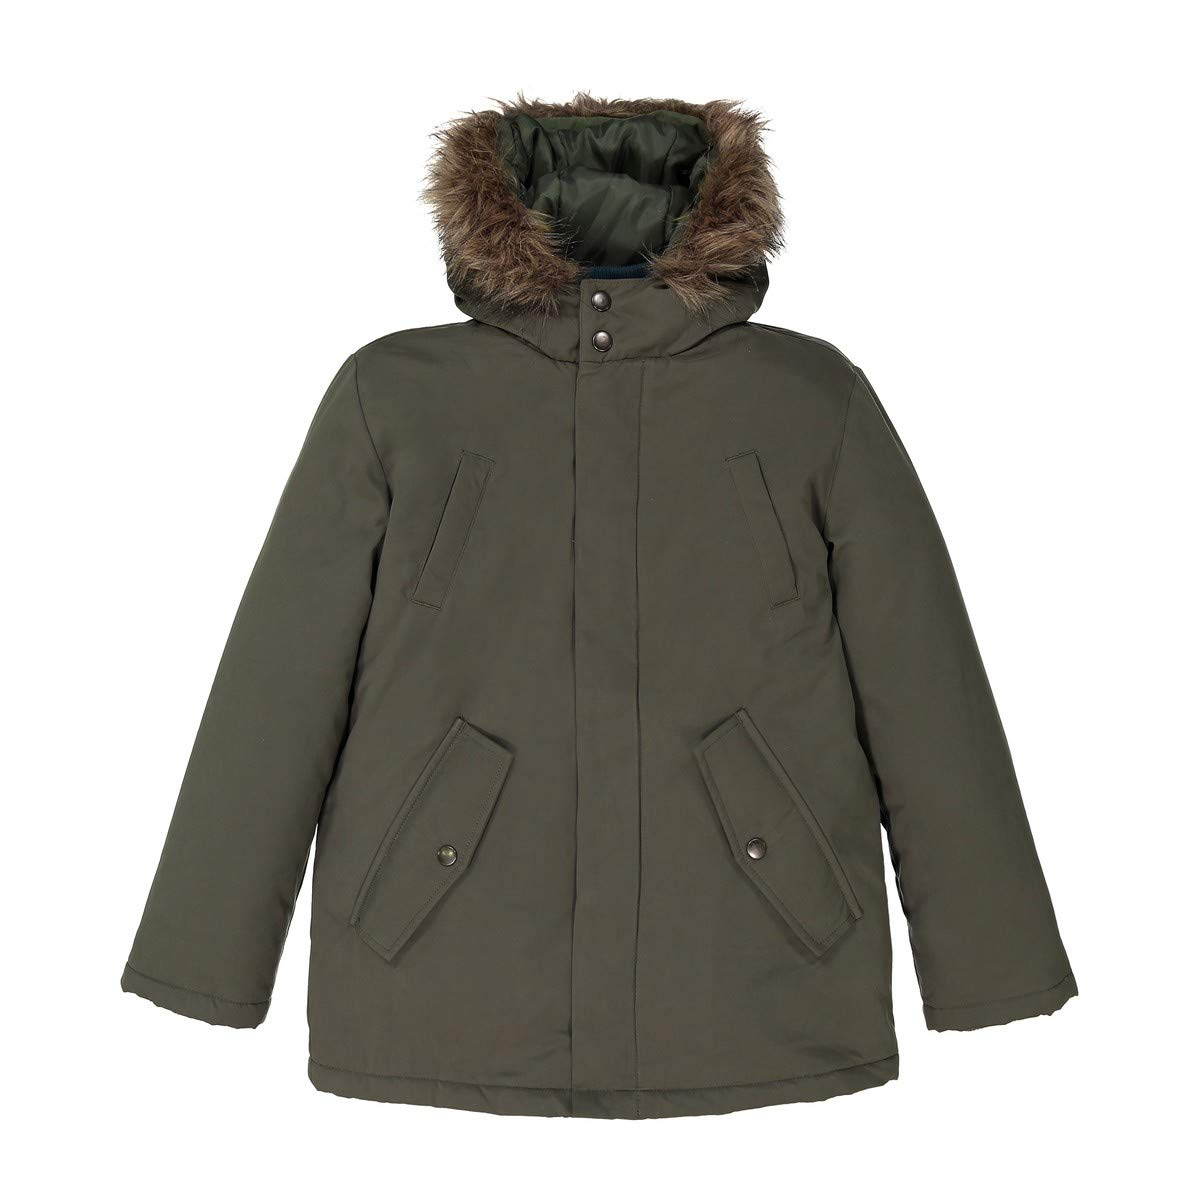 La Redoute Collections Big Boys 3-in-1 Parka, 3-12 Years Green Size 6 Years - 44 in. by La Redoute (Image #4)